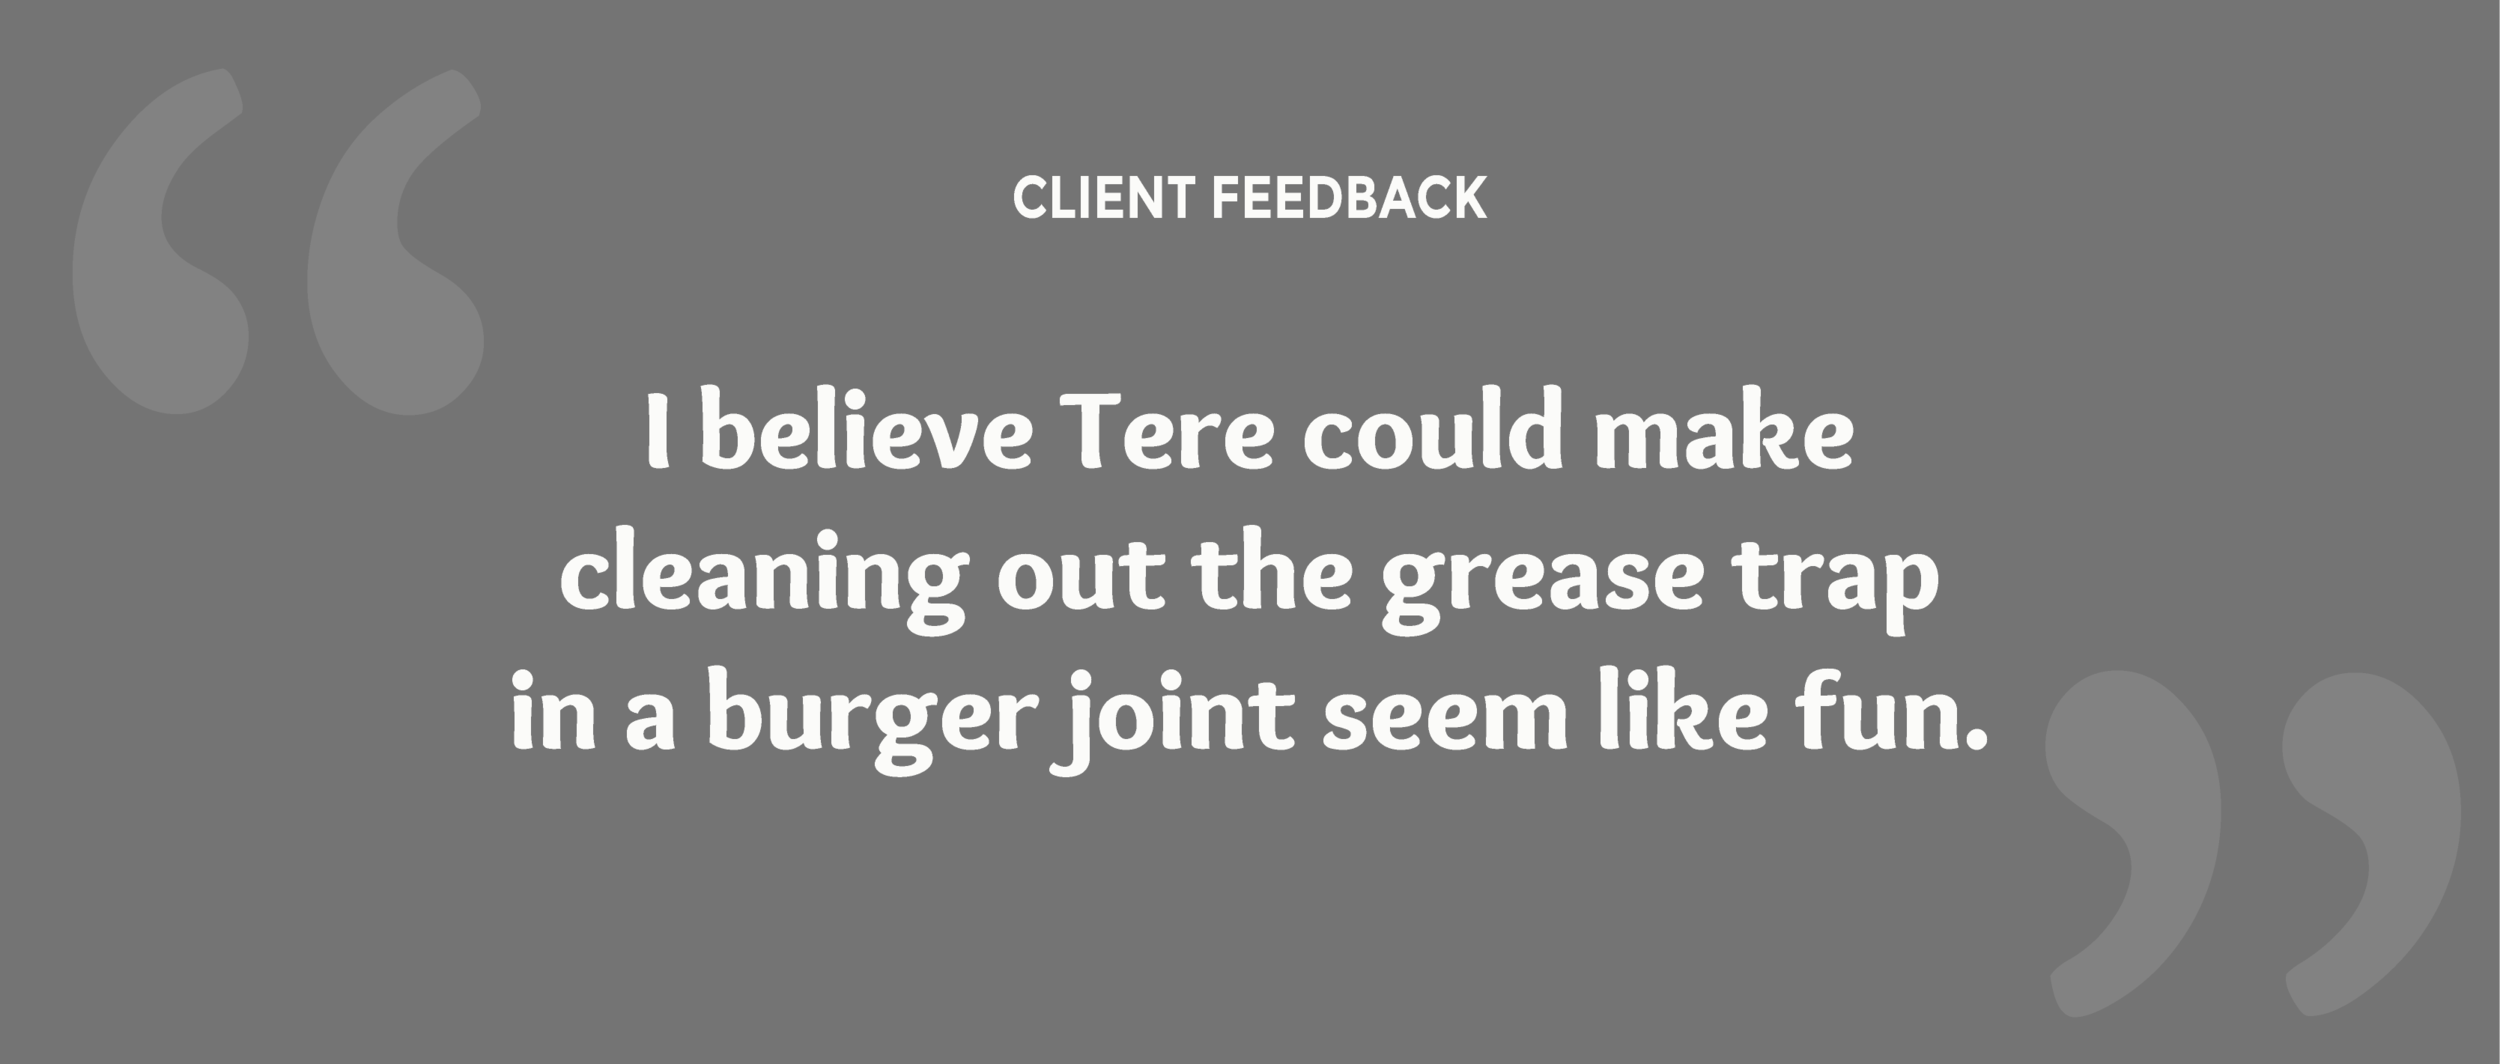 about-client-feedback6.png